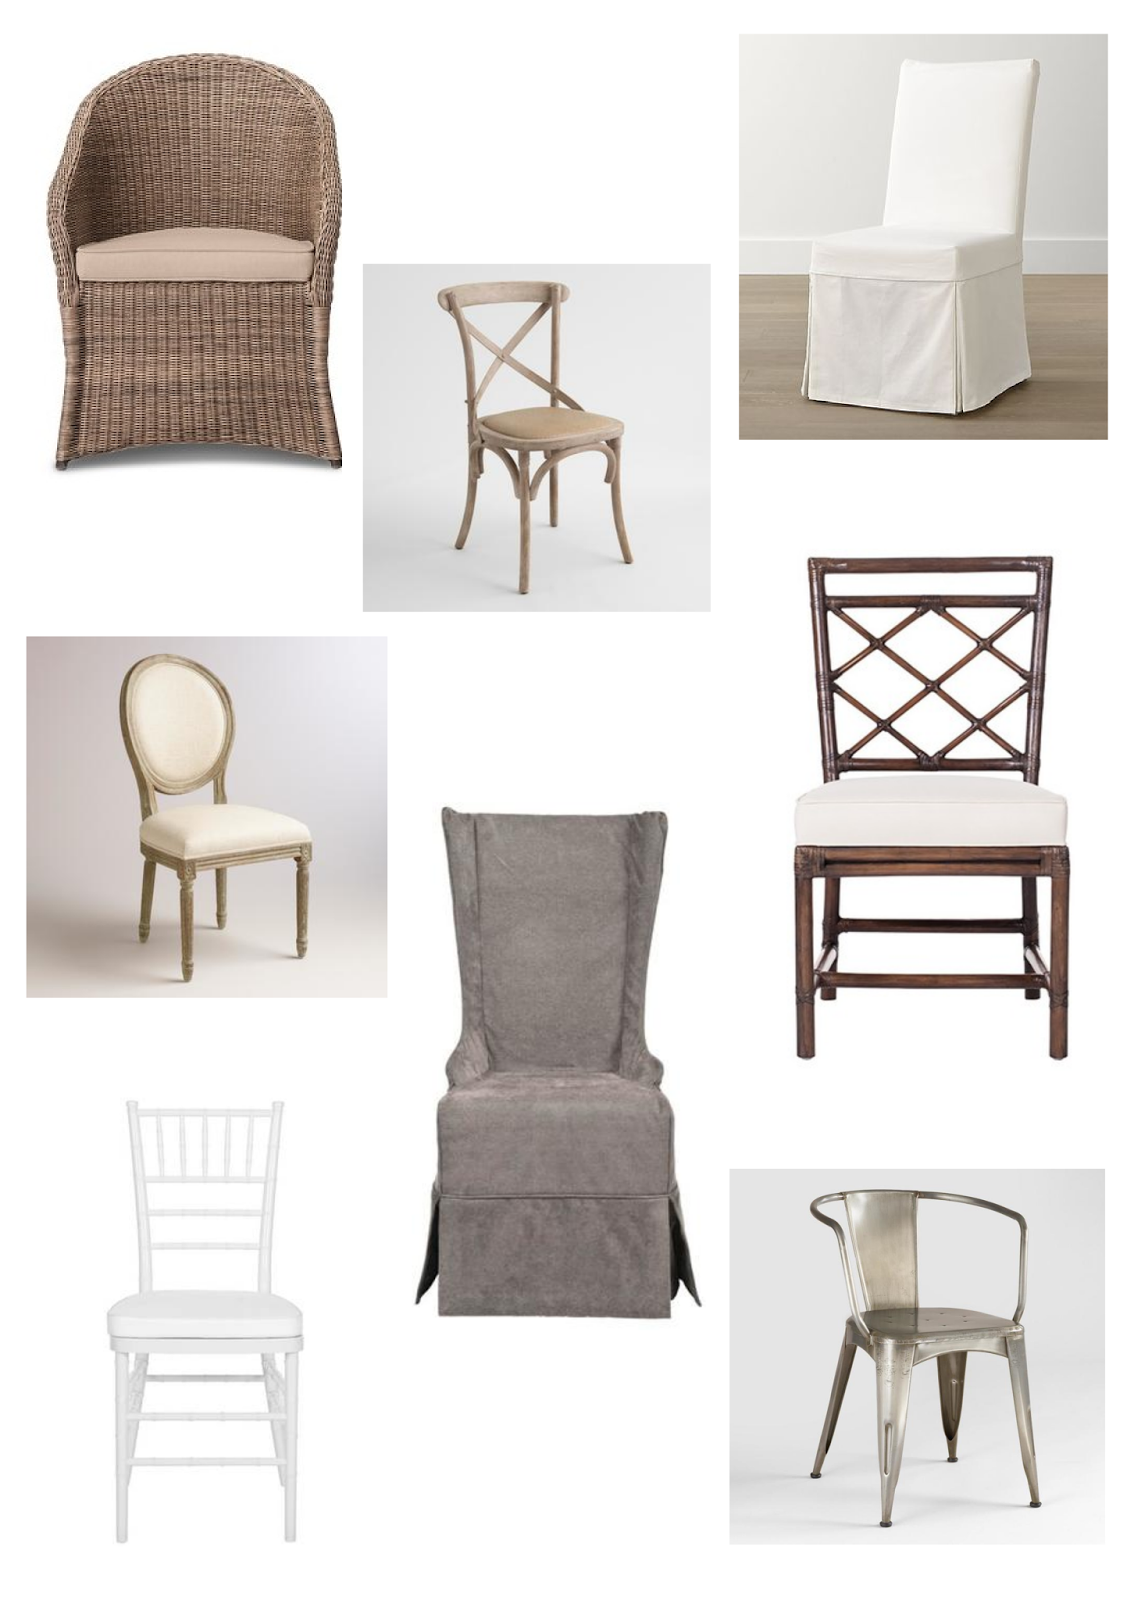 Styles Of Chairs Mixing Dining Room Chair Styles Home With Keki